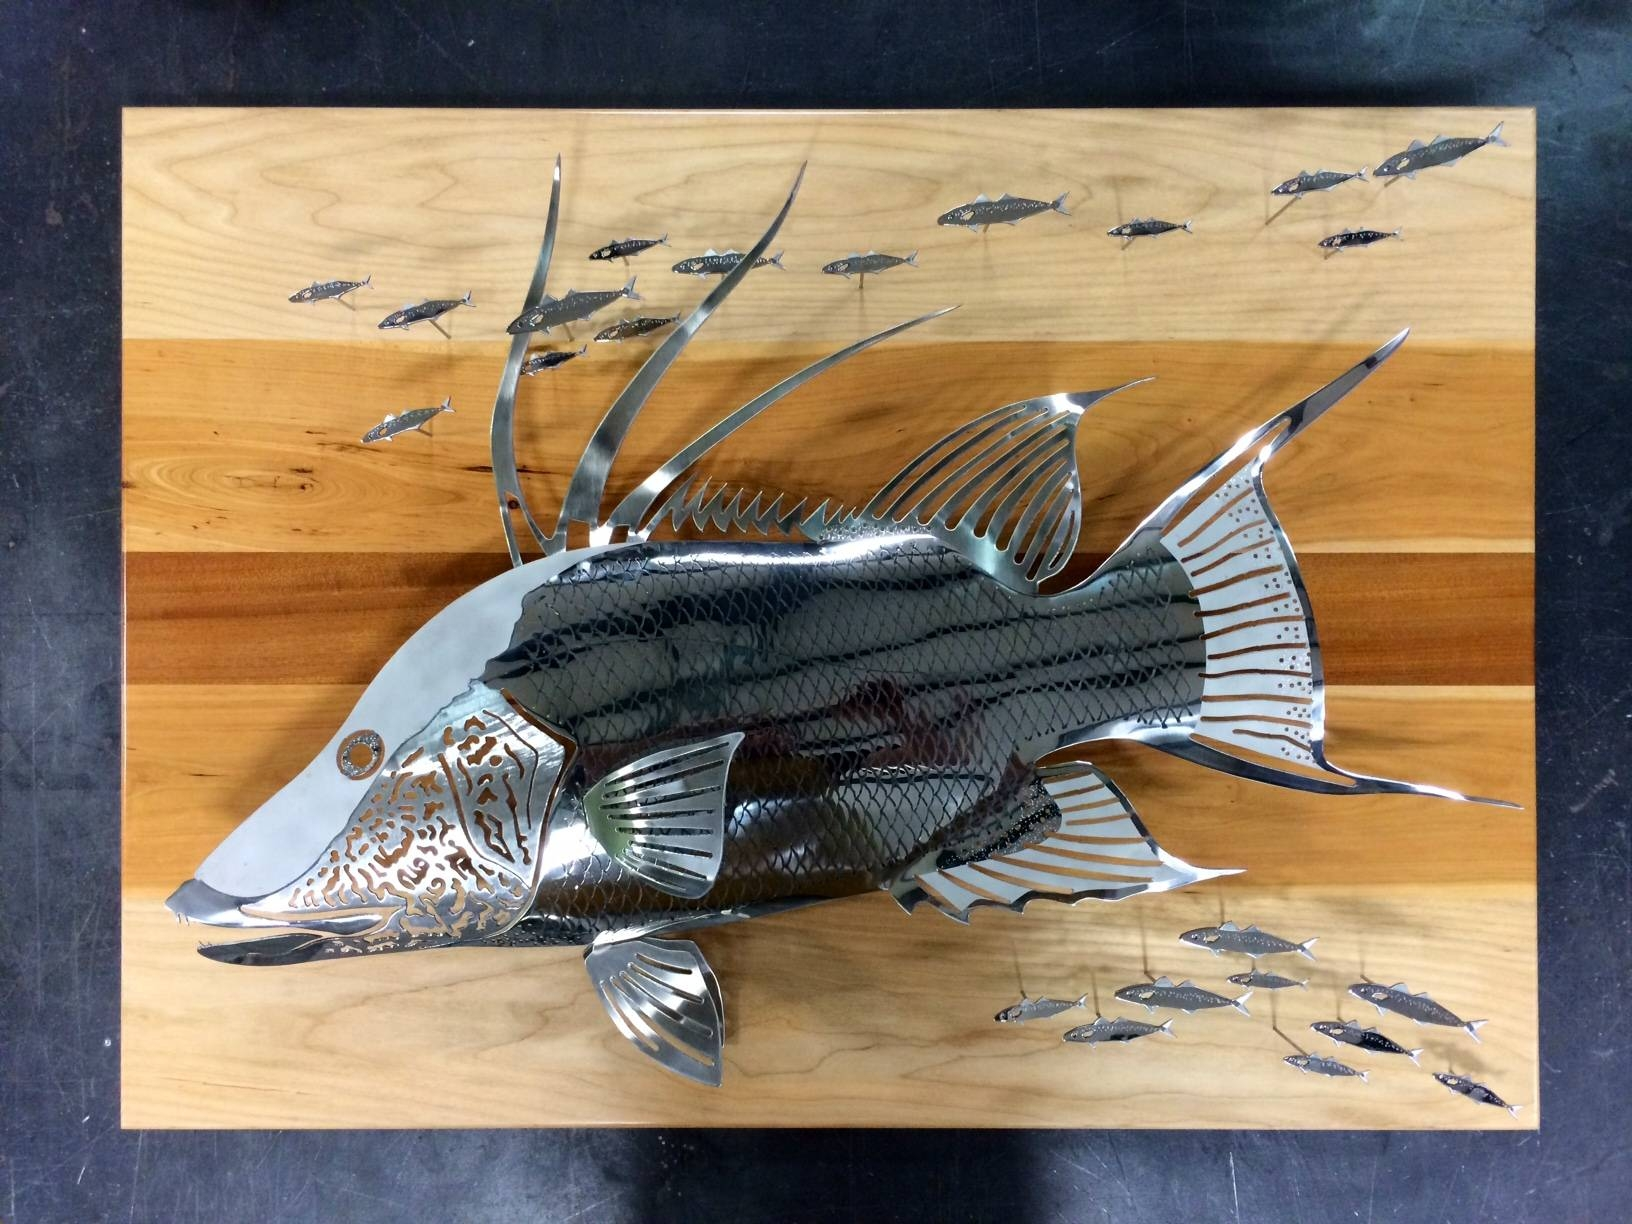 Custom Artwork, Sculptures And Furniture Gallery For Most Up To Date Stainless Steel Fish Wall Art (View 6 of 17)